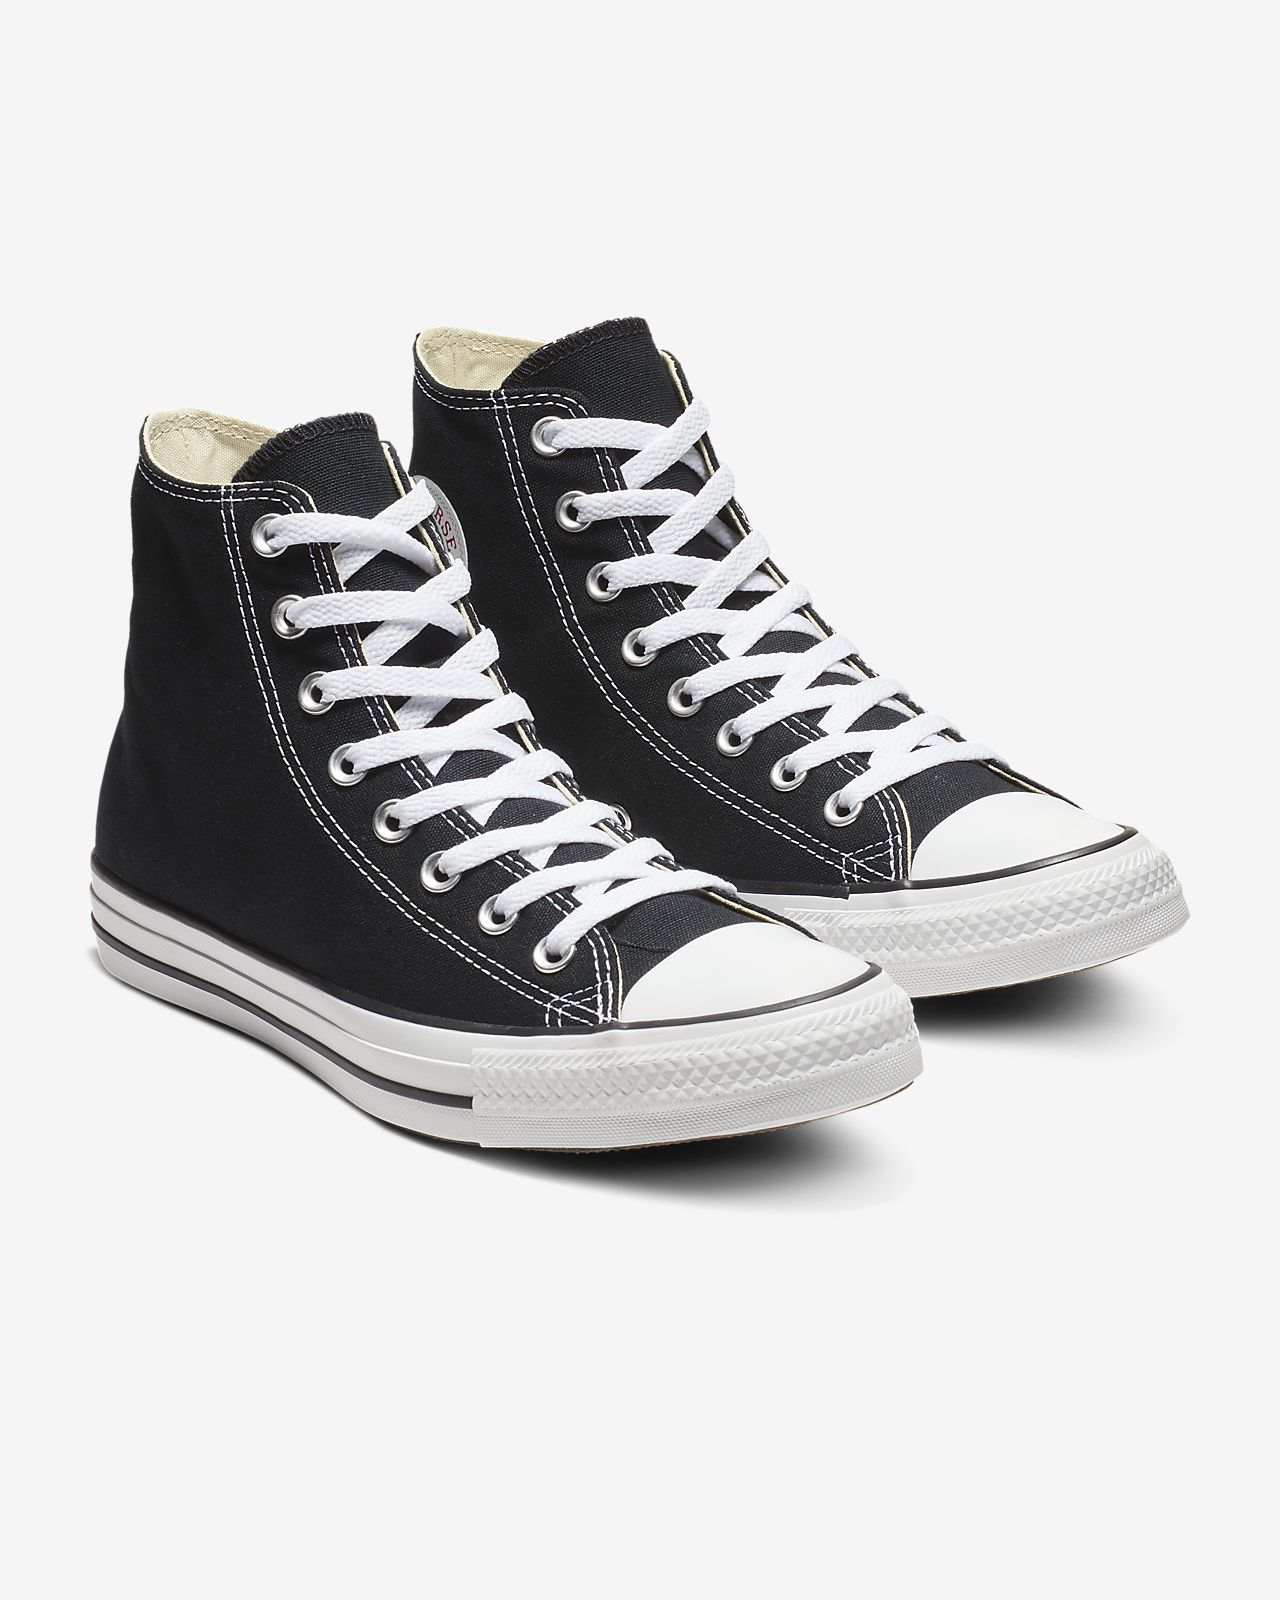 281361f81c48 Converse Chuck Taylor All Star High Top Unisex Shoe. Nike.com